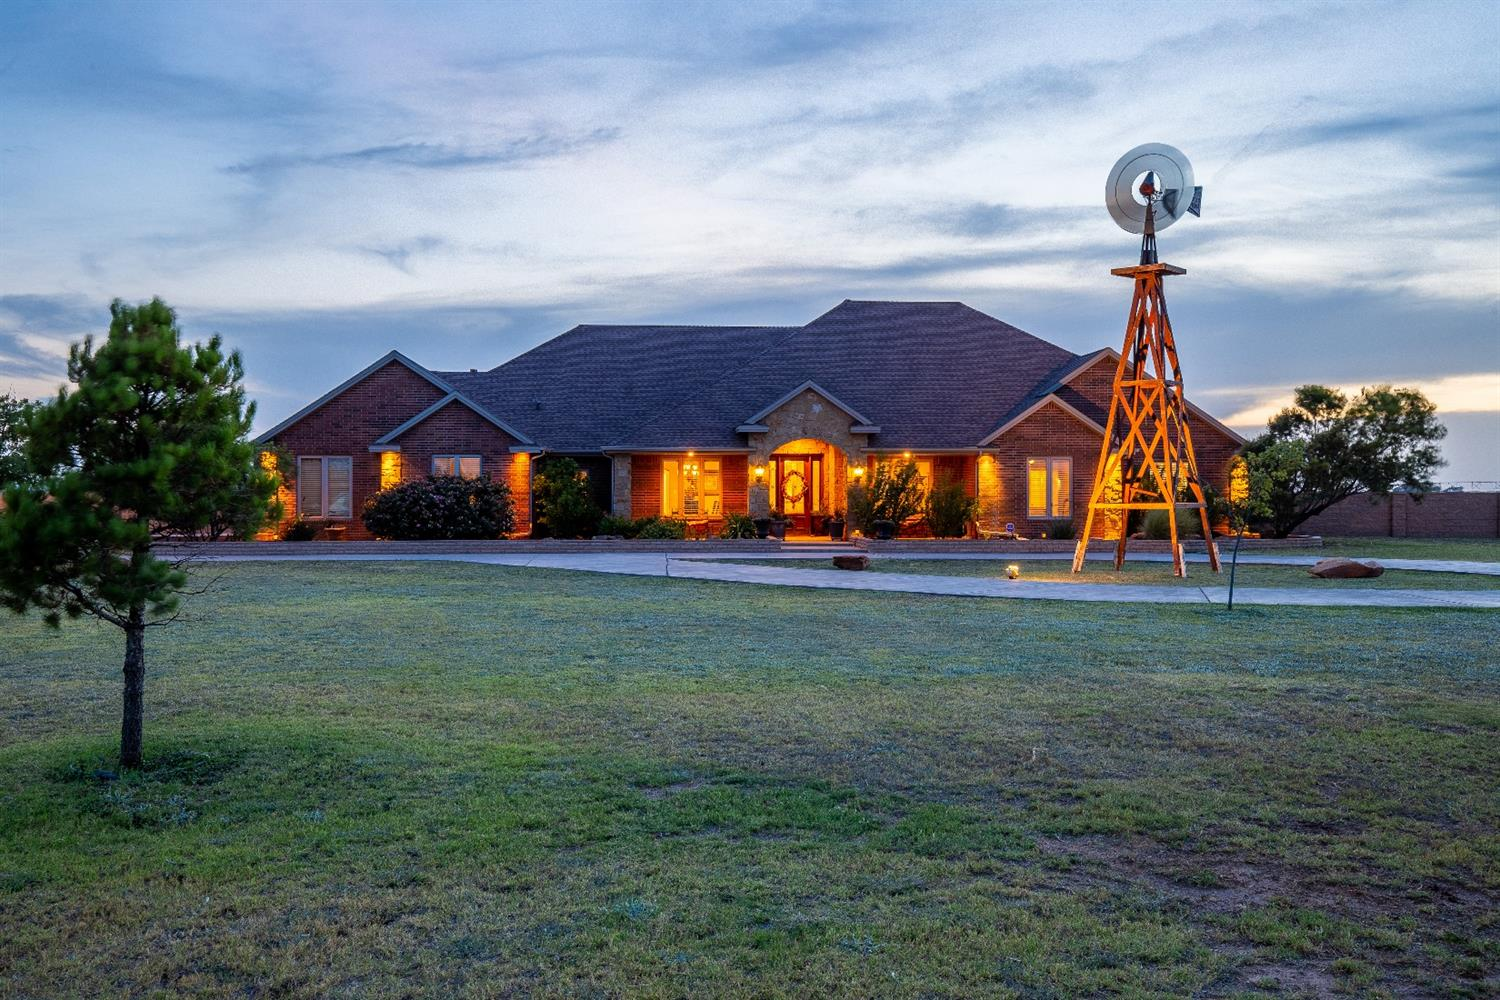 LUXURY custom, West Texas dream home on 3 ACRES! Room to roam... This home has it all! Luxury life with beautiful sunset and sunrise views right outside each window! Peaceful, isolated and yet perfectly situated in Frenship School district. 5 bedrooms, 4 full bathrooms, 3 car oversized garage, 3 fireplaces, 2 spacious living areas, study, basement/media room, salt water Bahama Beach pool. This home boasts two dishwashers in the kitchen! The  media room furniture and projector convey, as well as refrigerator/freezer in kitchen and the washer+dryer. Well pump, bladder and power all new in 2020. Welcome to your picture-perfect West Texas Dream Home!